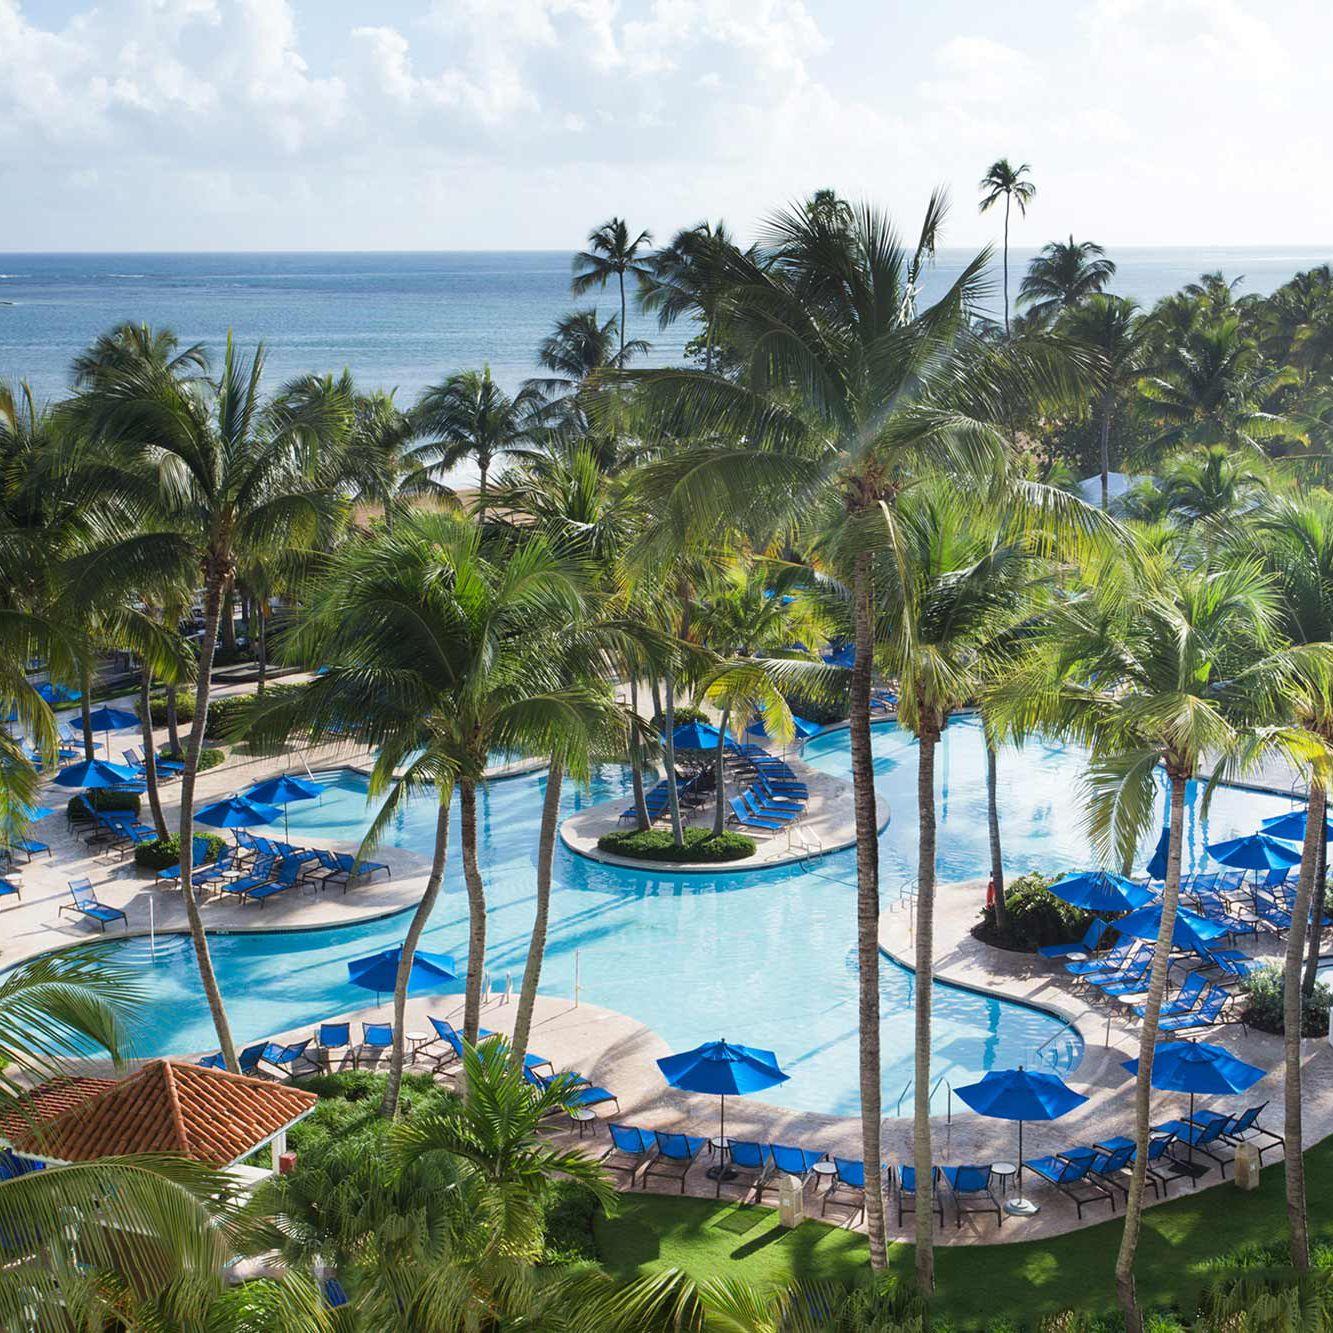 The 9 Best All-Inclusive Puerto Rico Resorts of 2020